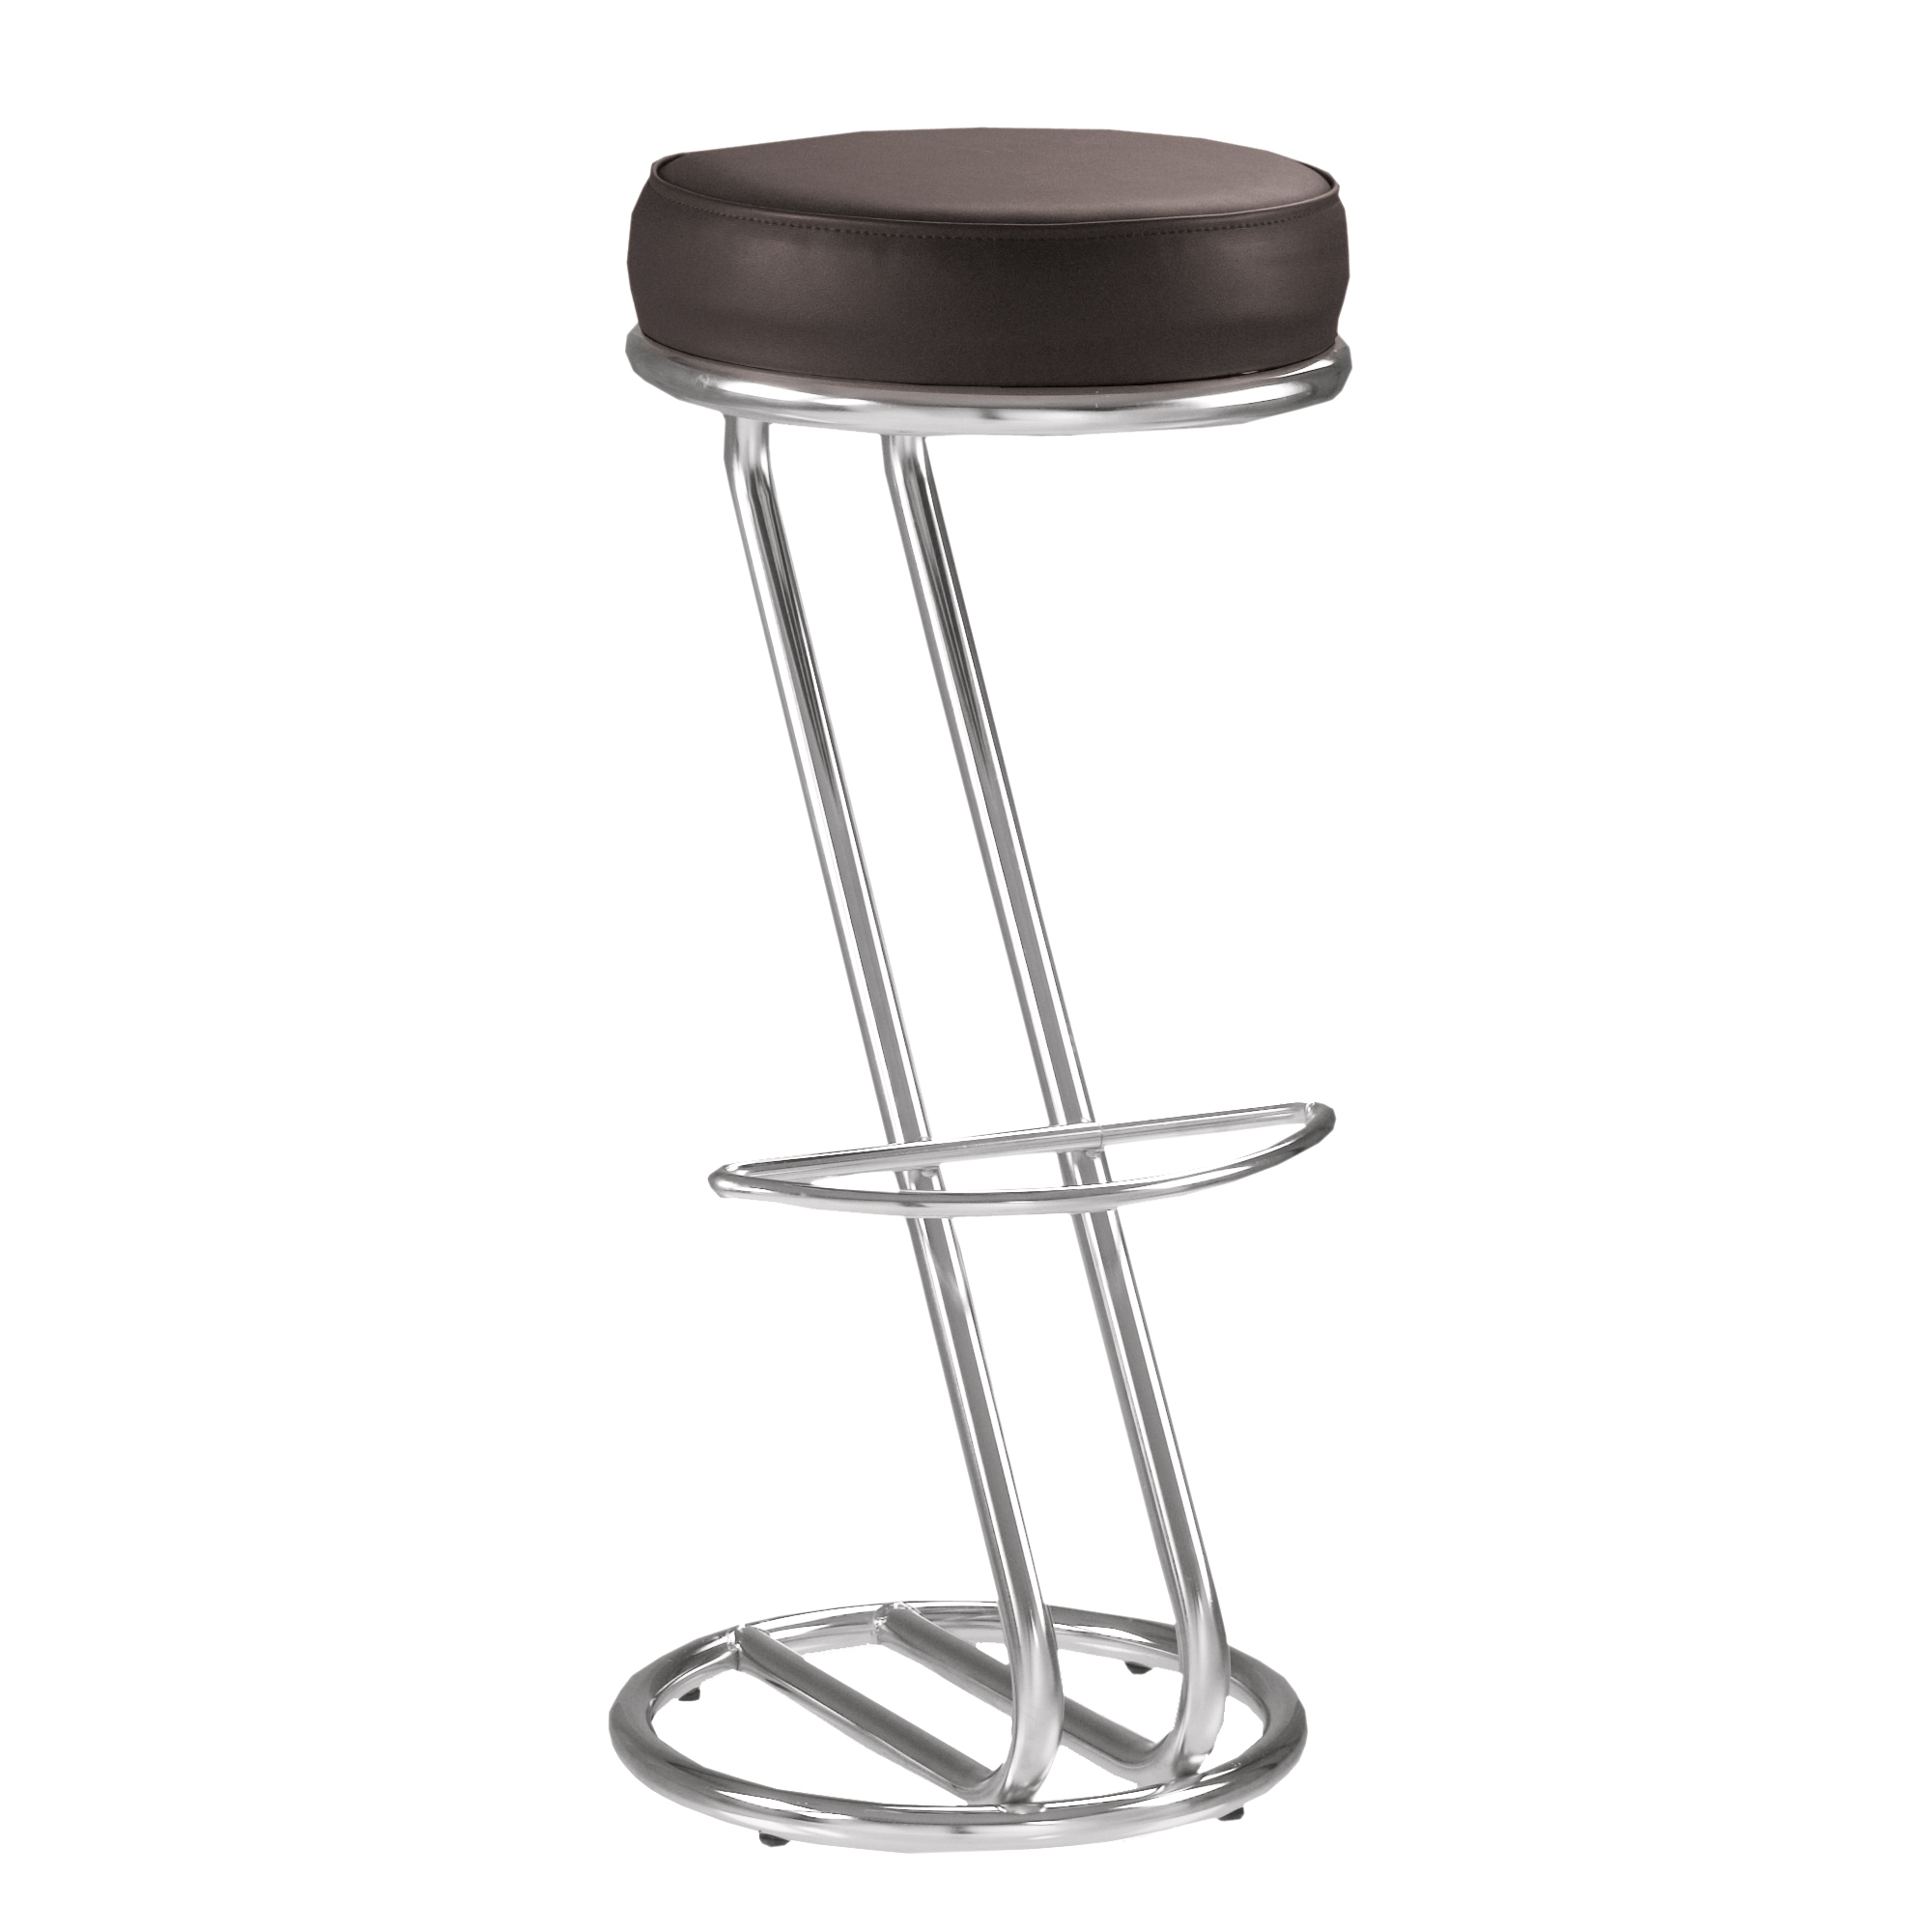 Lot de 2 tabourets de bar chaise haute de bar zeta noir for Siege de tabouret de bar